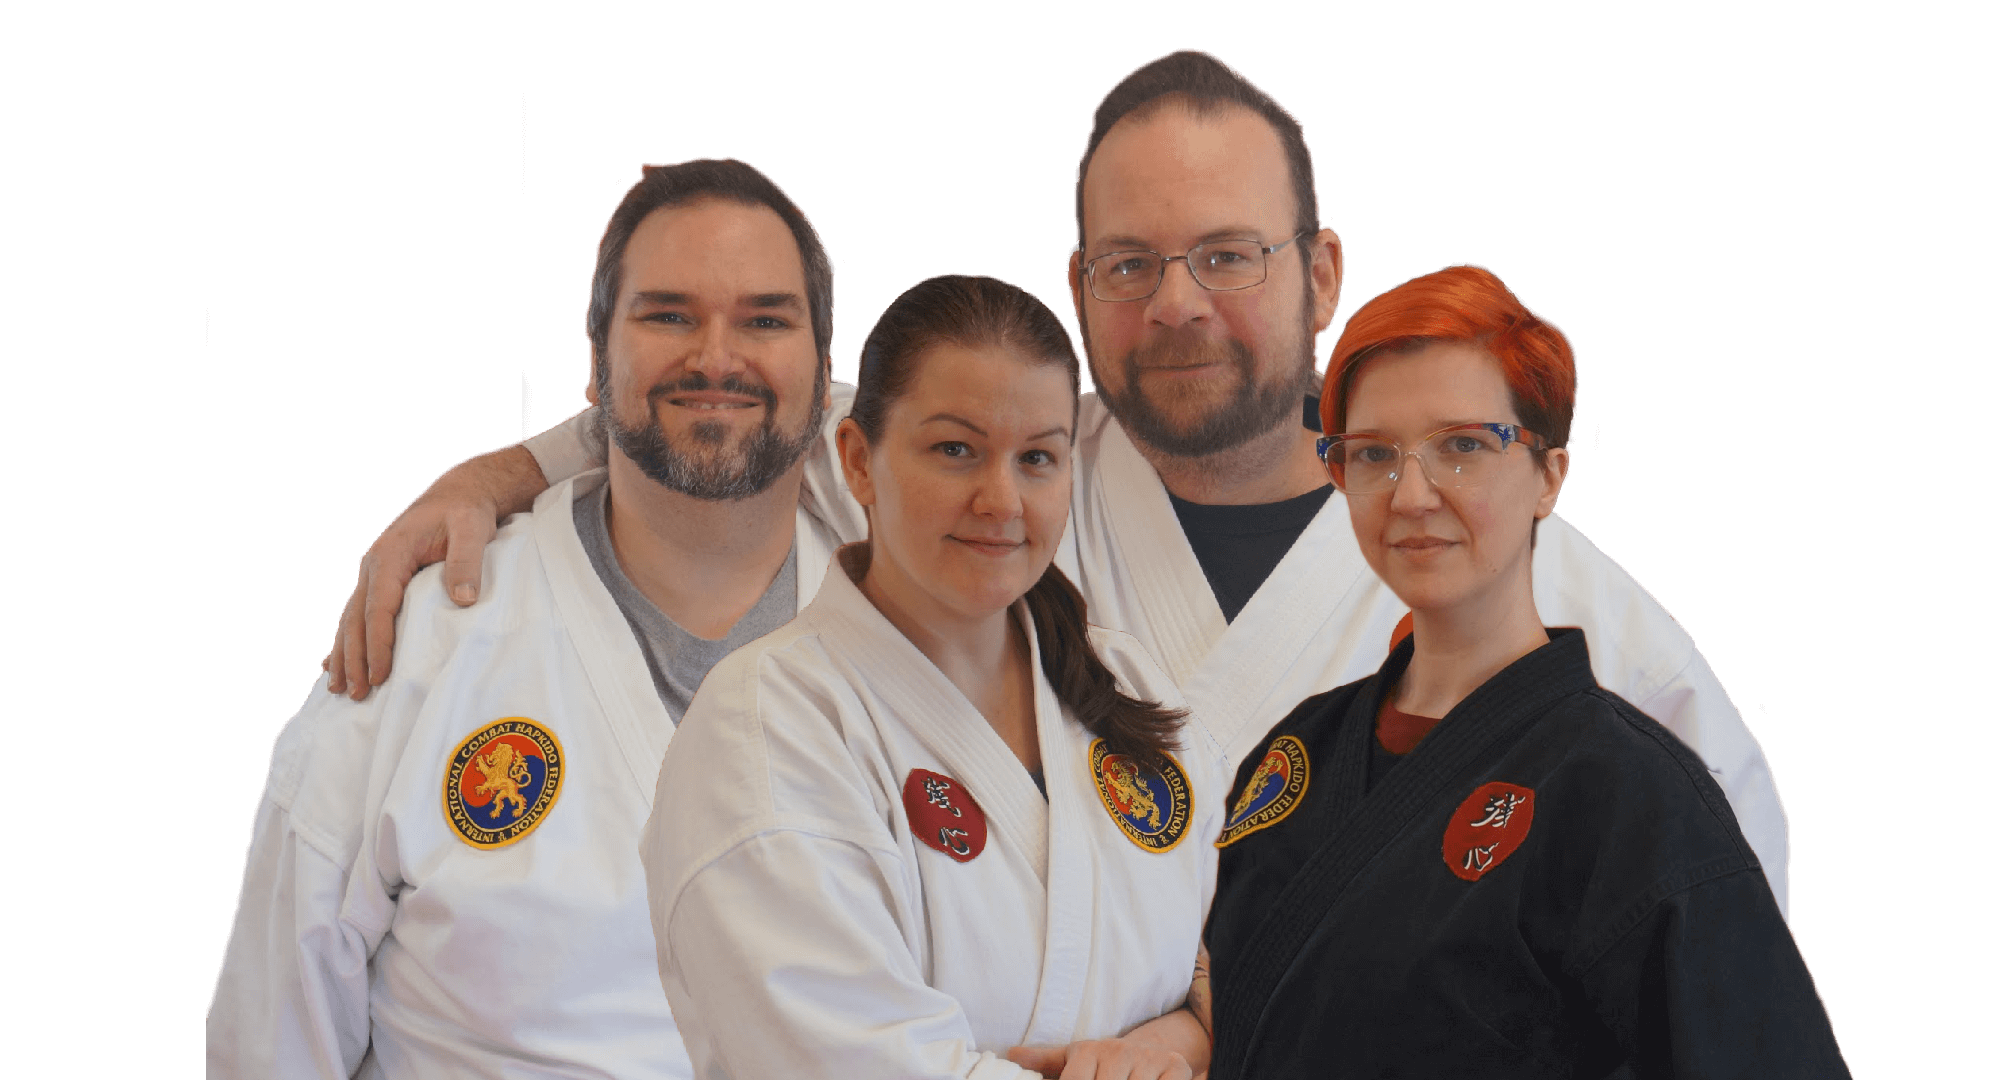 Adult Martial Arts - Self-Defense Students